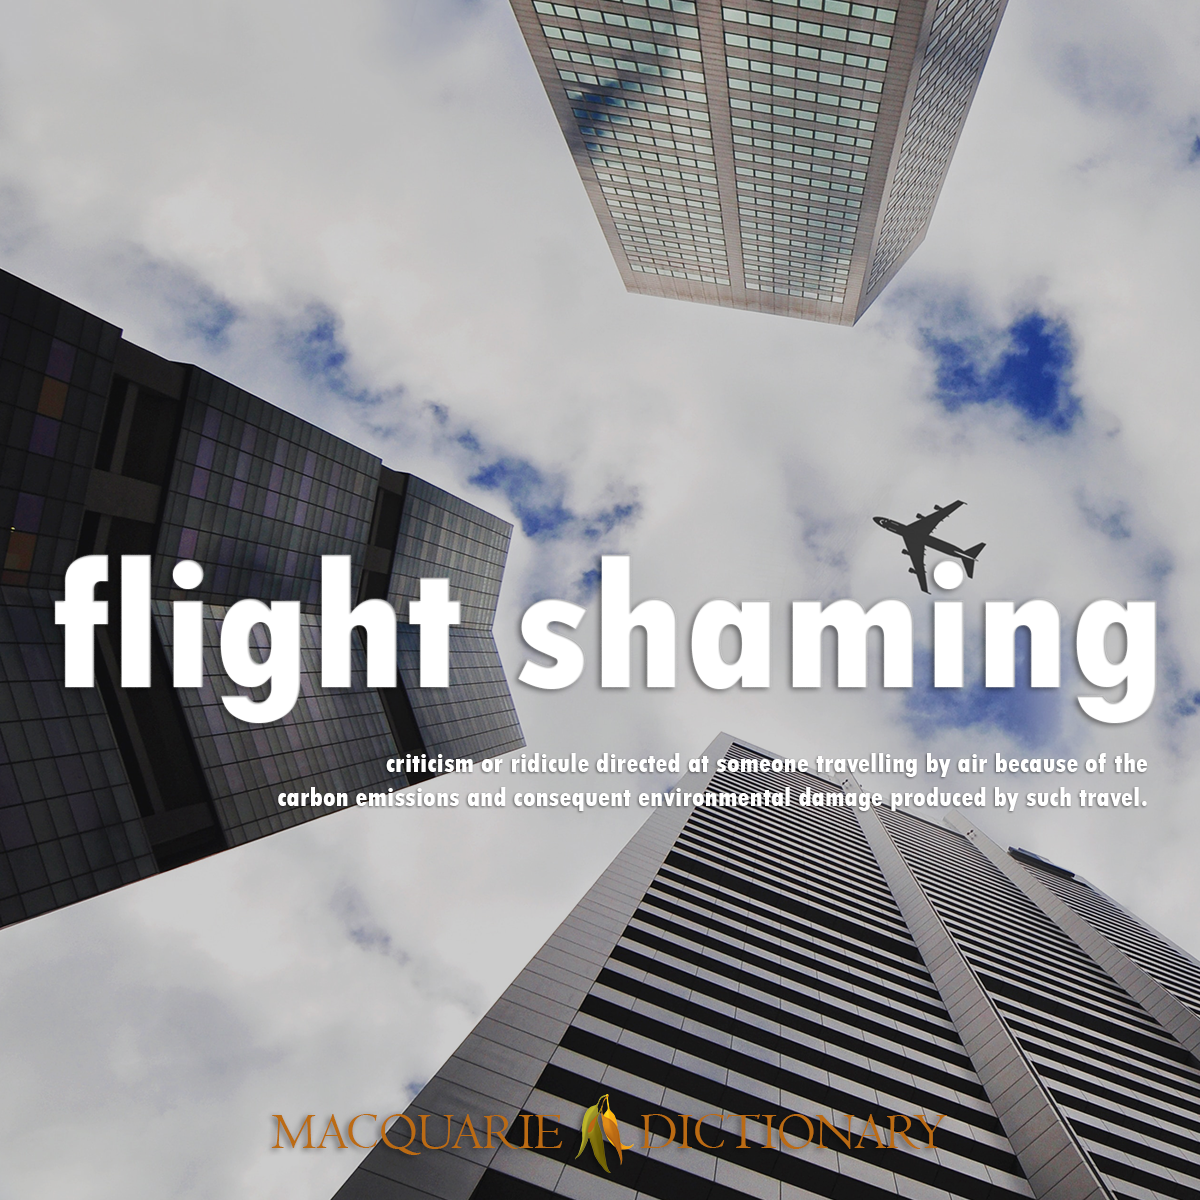 Image of Macquarie Dictionary Word of the Year flight shaming criticism or ridicule directed at someone travelling by air because of the carbon emissions and consequent environmental damage produced by such travel.